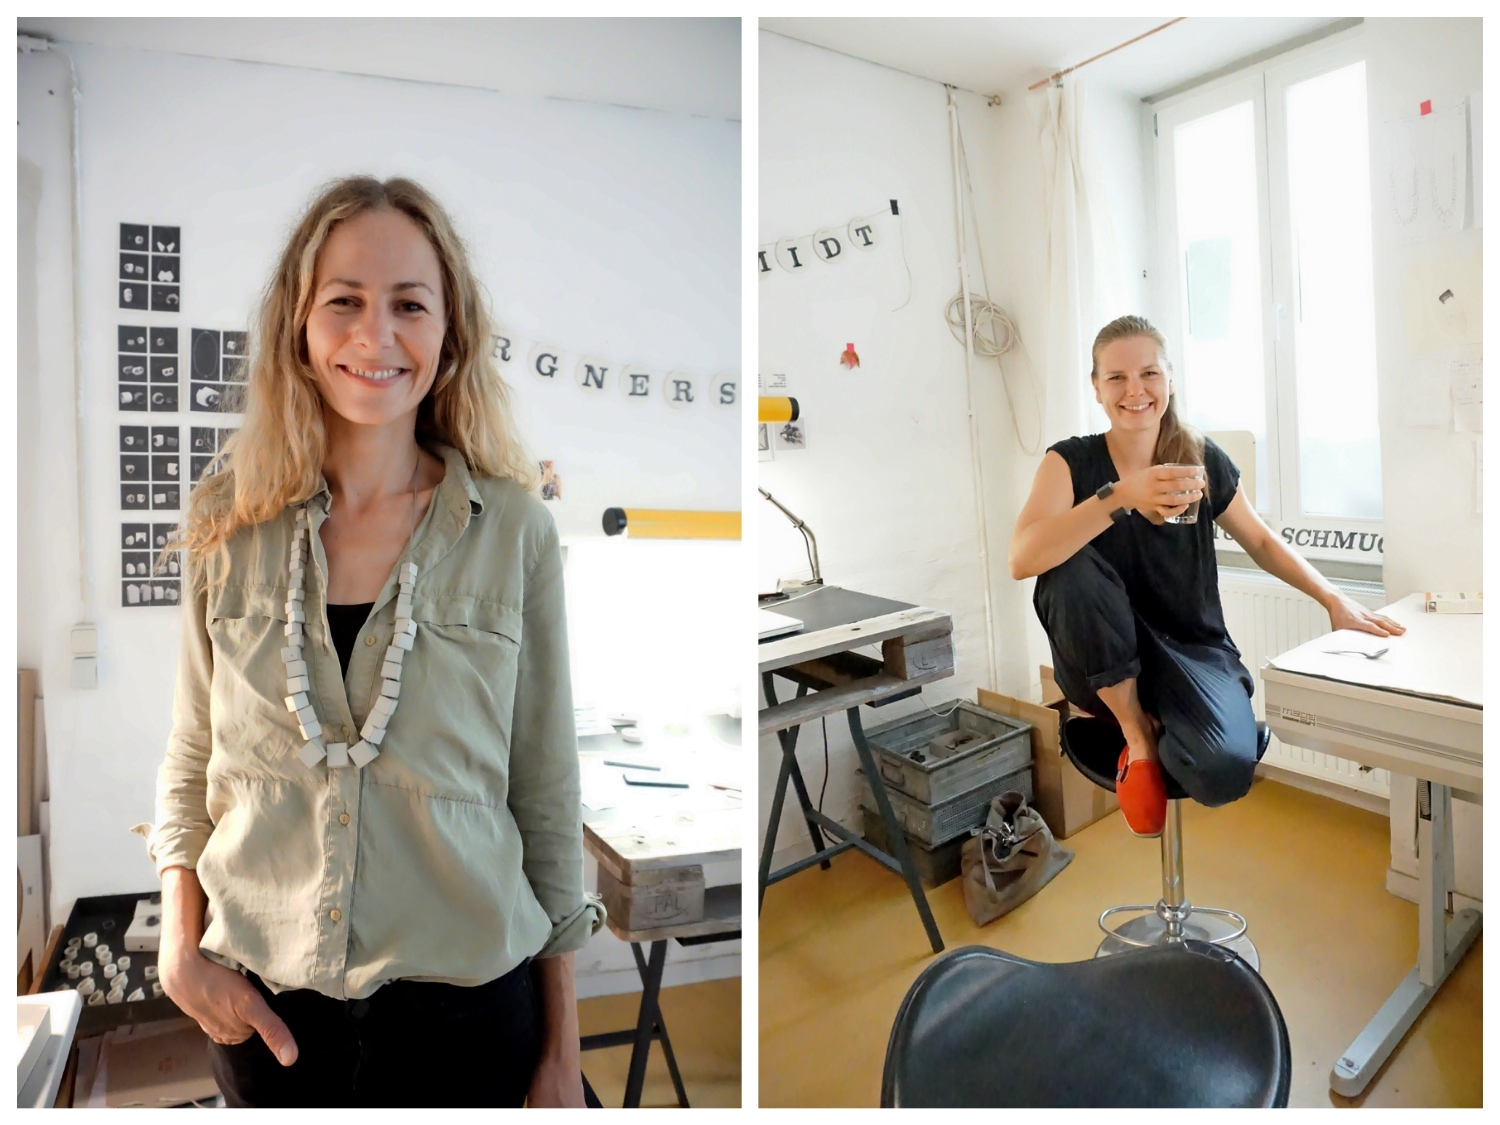 Meet the design duo behind bergnerschmidt Concrete jewellery: Lily Bergner on the left and Elisabeth Schmidt on the right